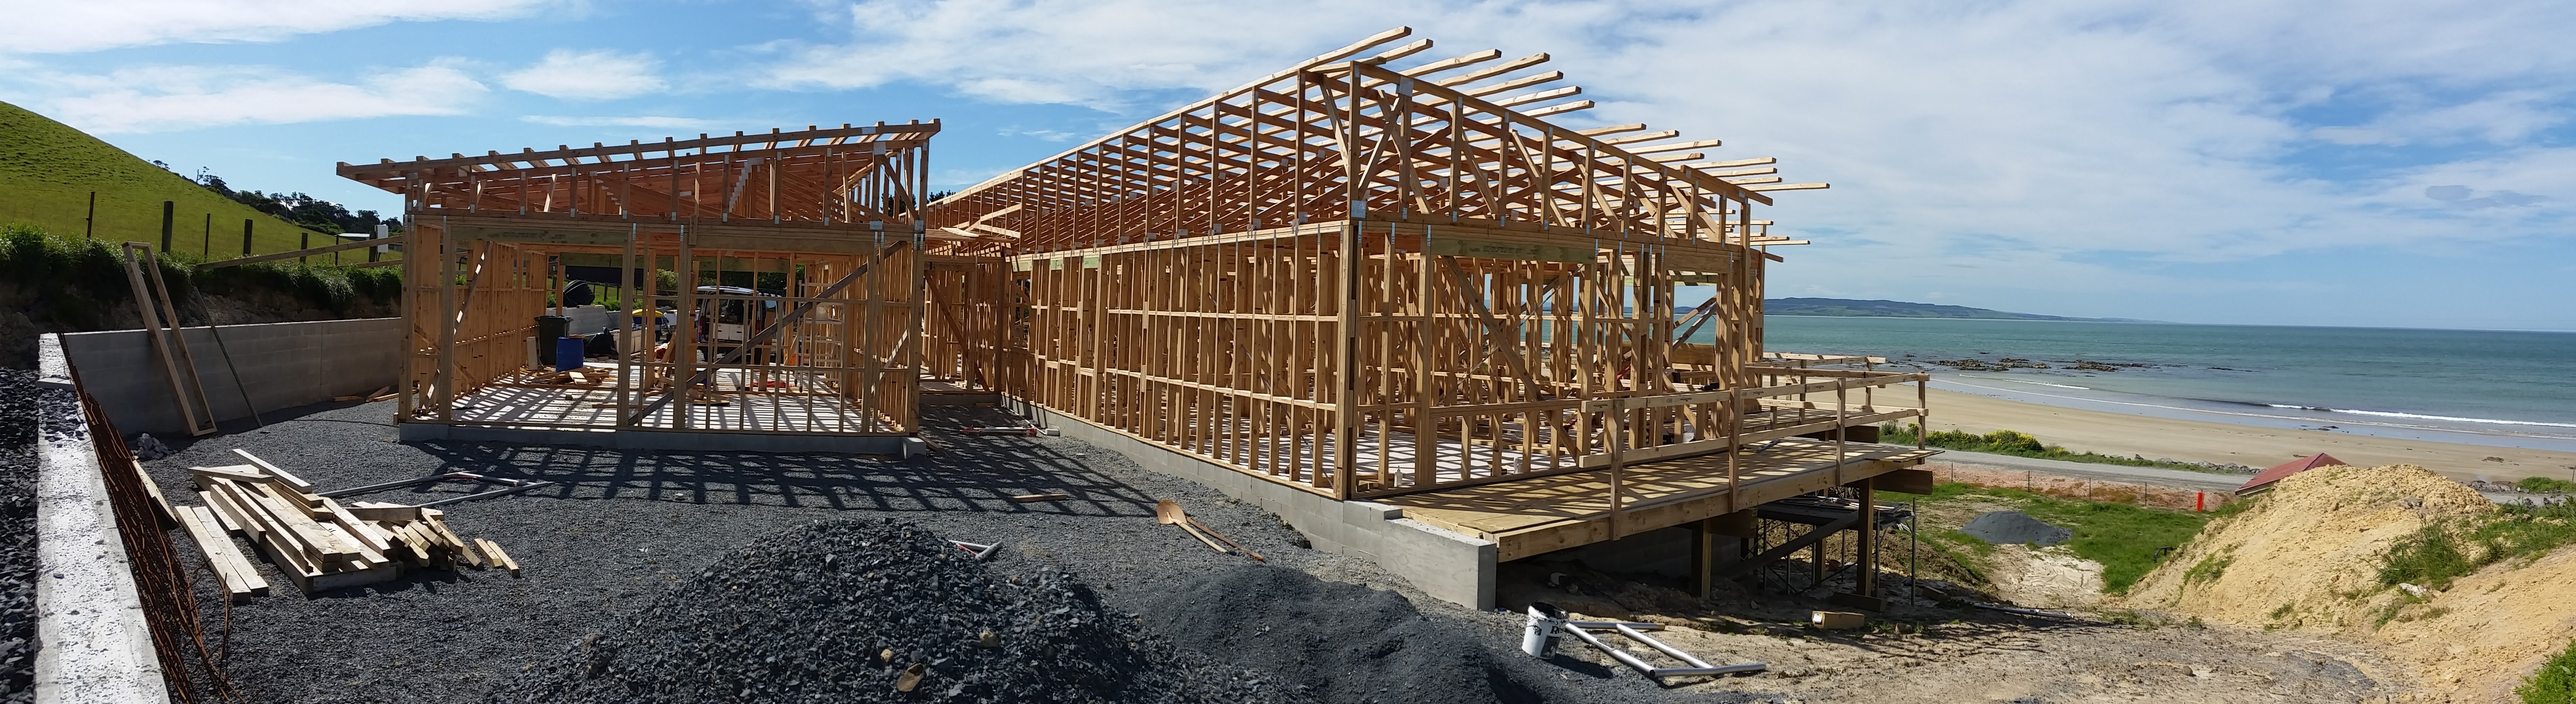 Construction blog south otago nz glenn wilkinson builder for Wilkerson builders